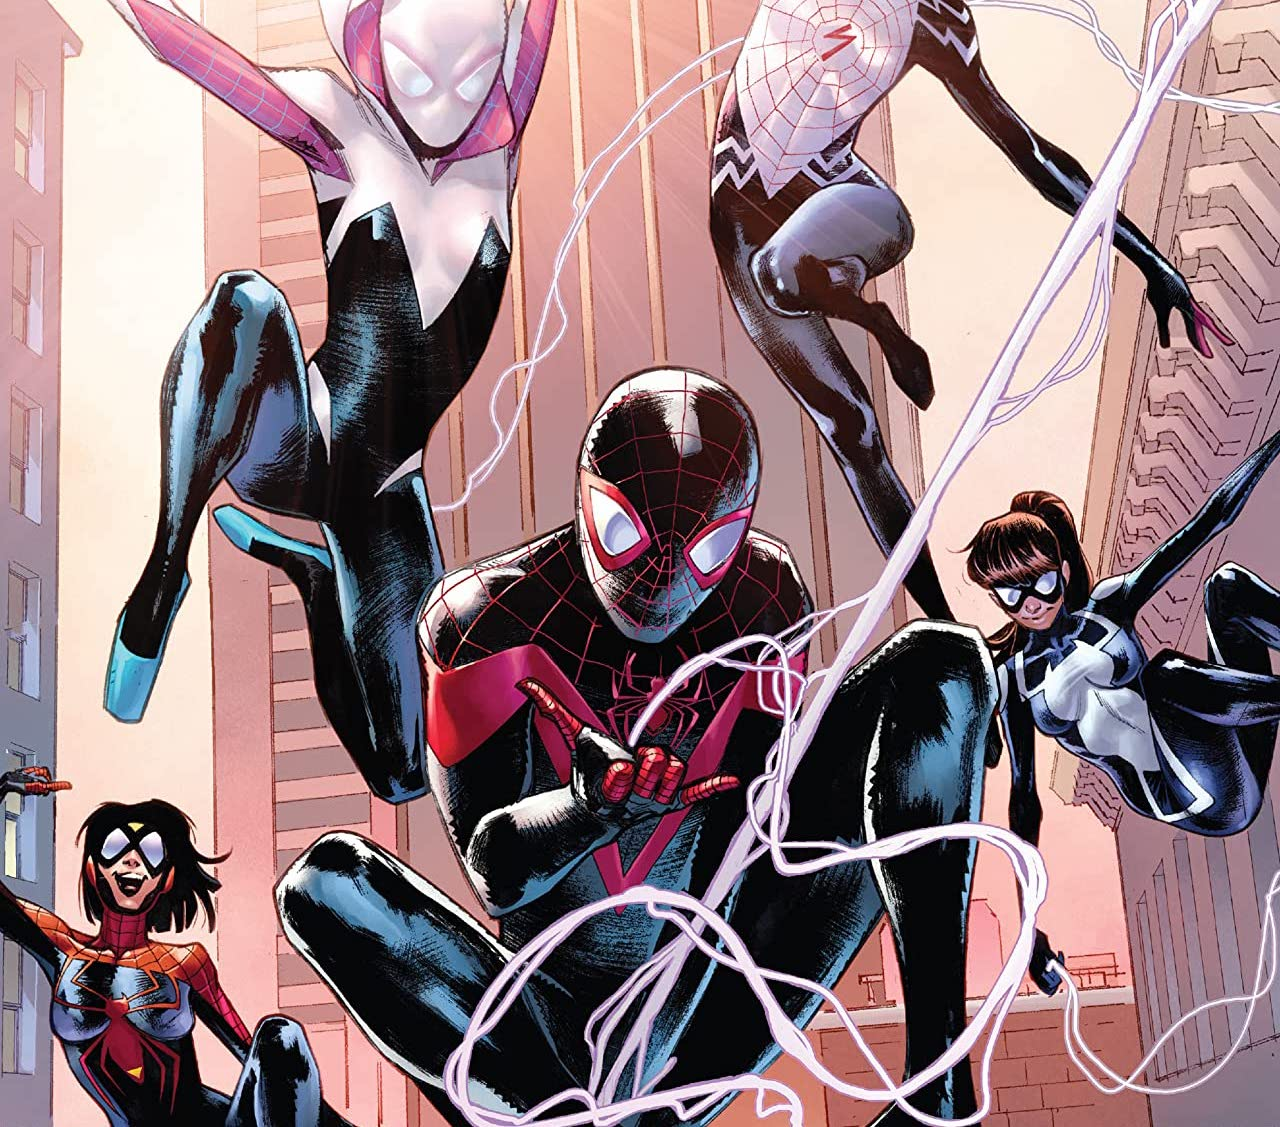 'Amazing Spider-Man' #50.LR review